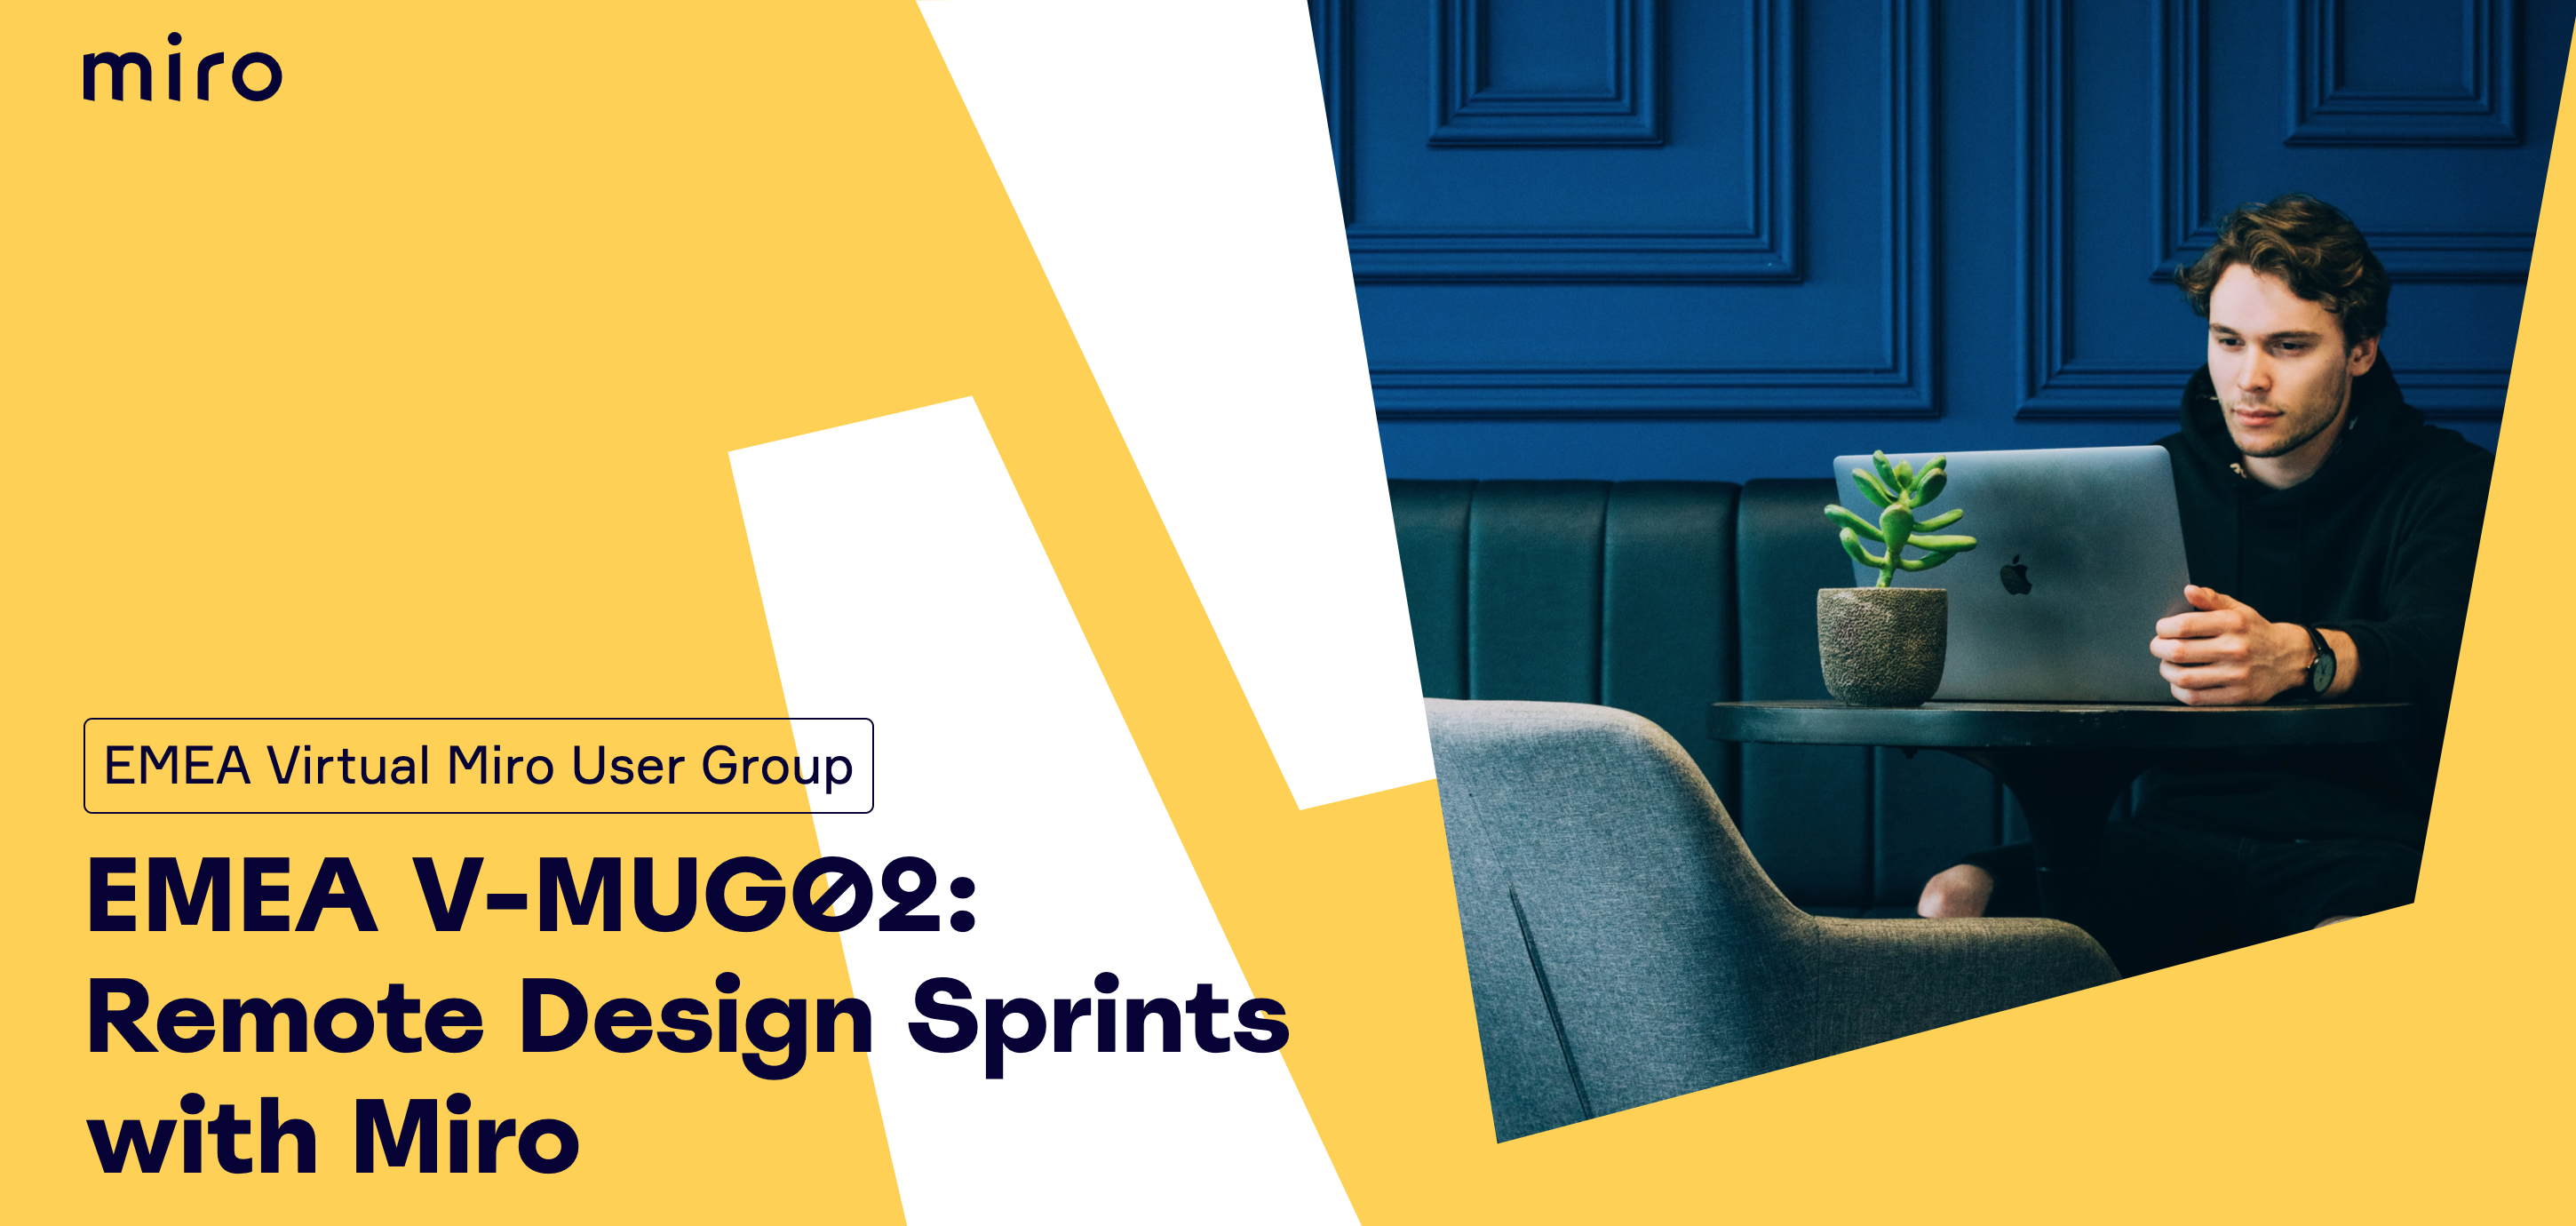 EMEA V-MUG02: Remote Design Sprints with Miro & Just Mad